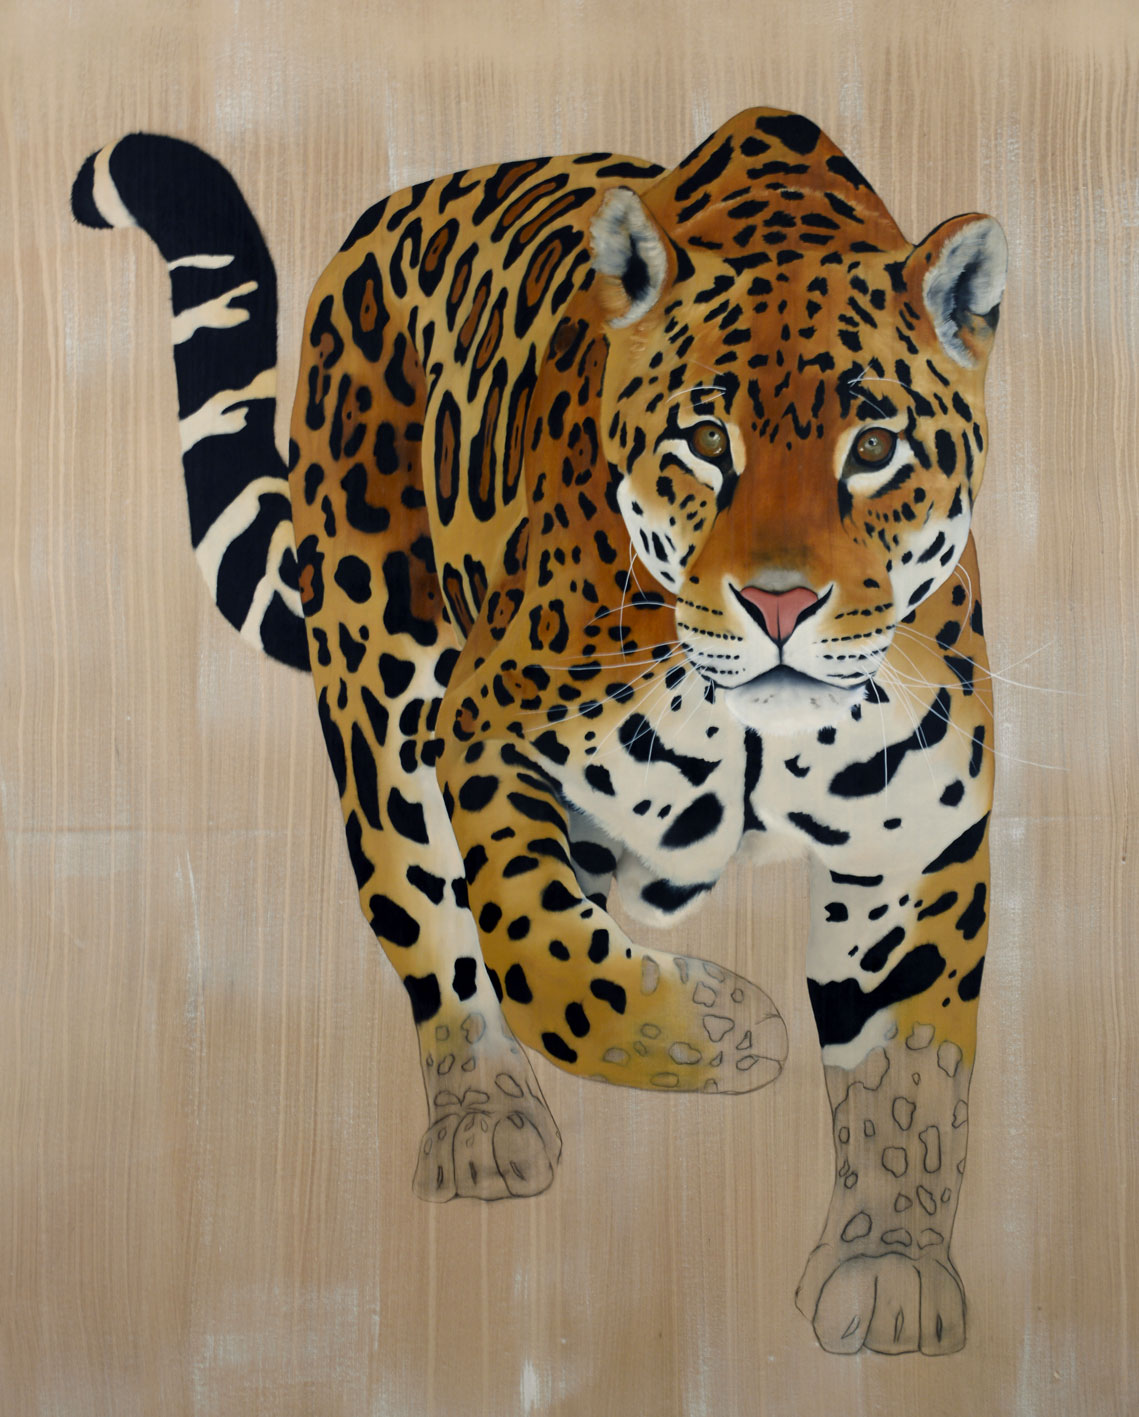 PANTHERA ONCA panthera%20onca%20jaguar%20delete%20threatened%20endangered%20extinction%20 Thierry Bisch painter animals painting art decoration hotel design interior luxury nature biodiversity conservation